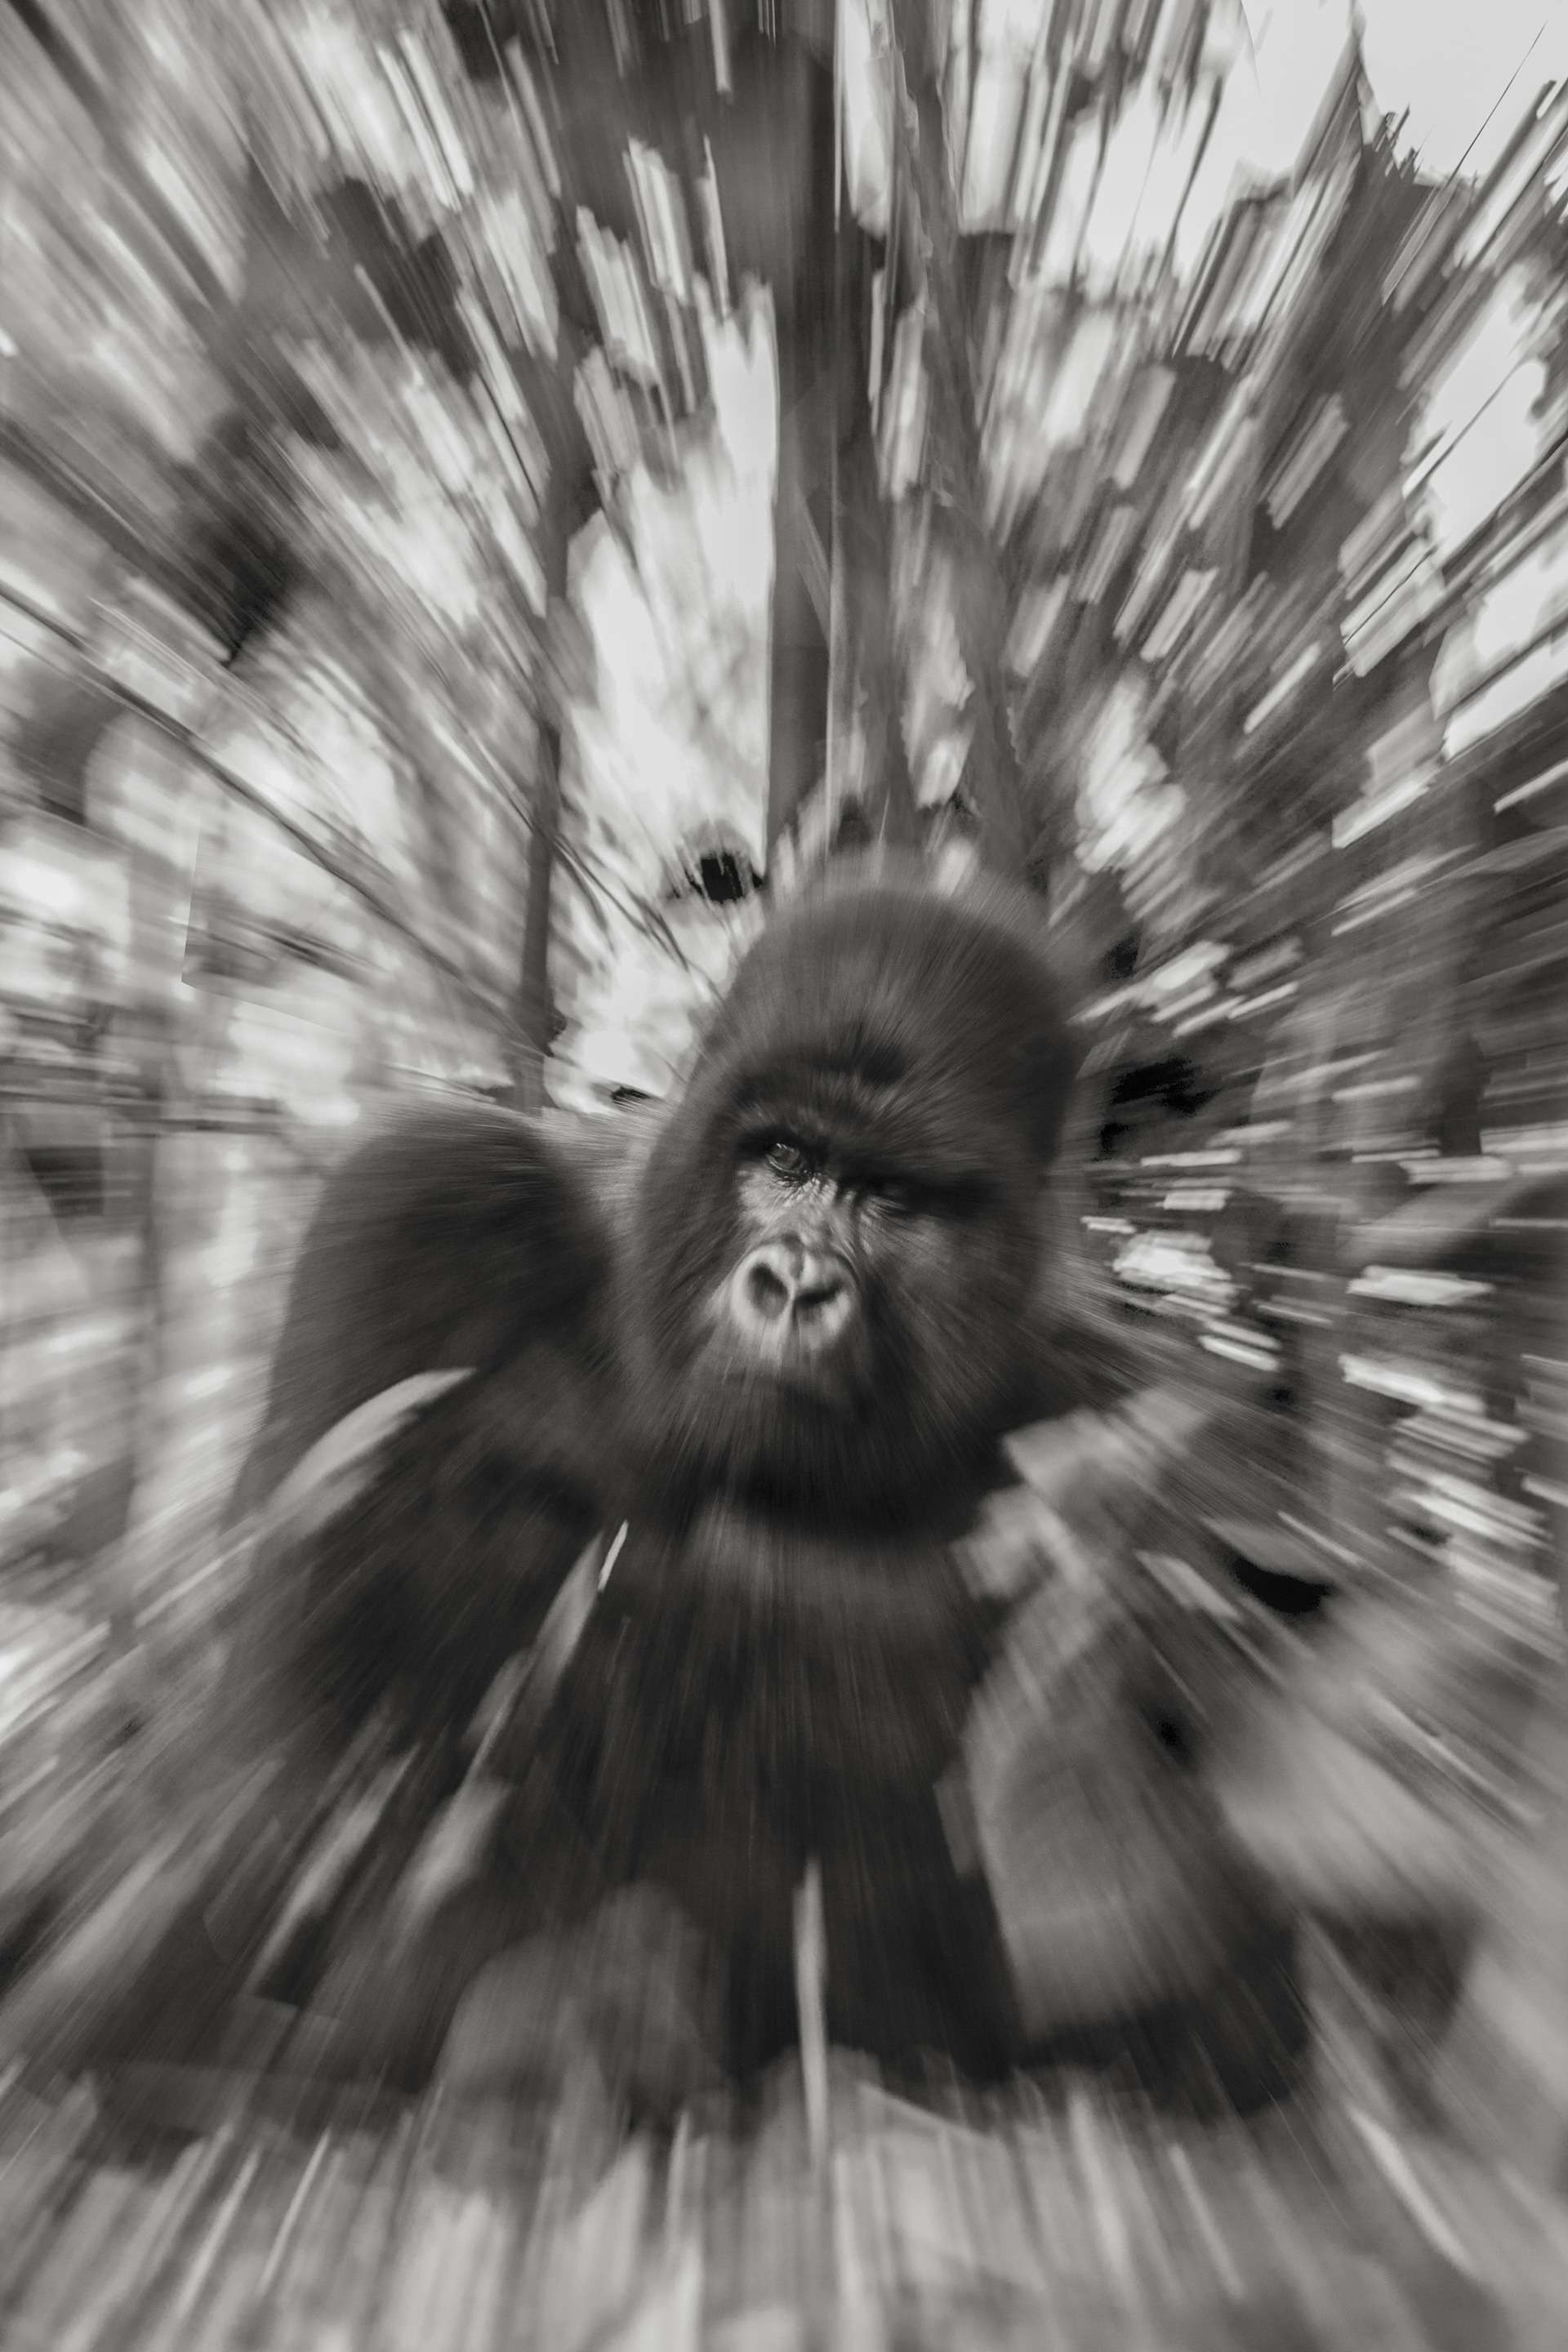 Gilles Martin's photograph of a gorilla from Rwanda